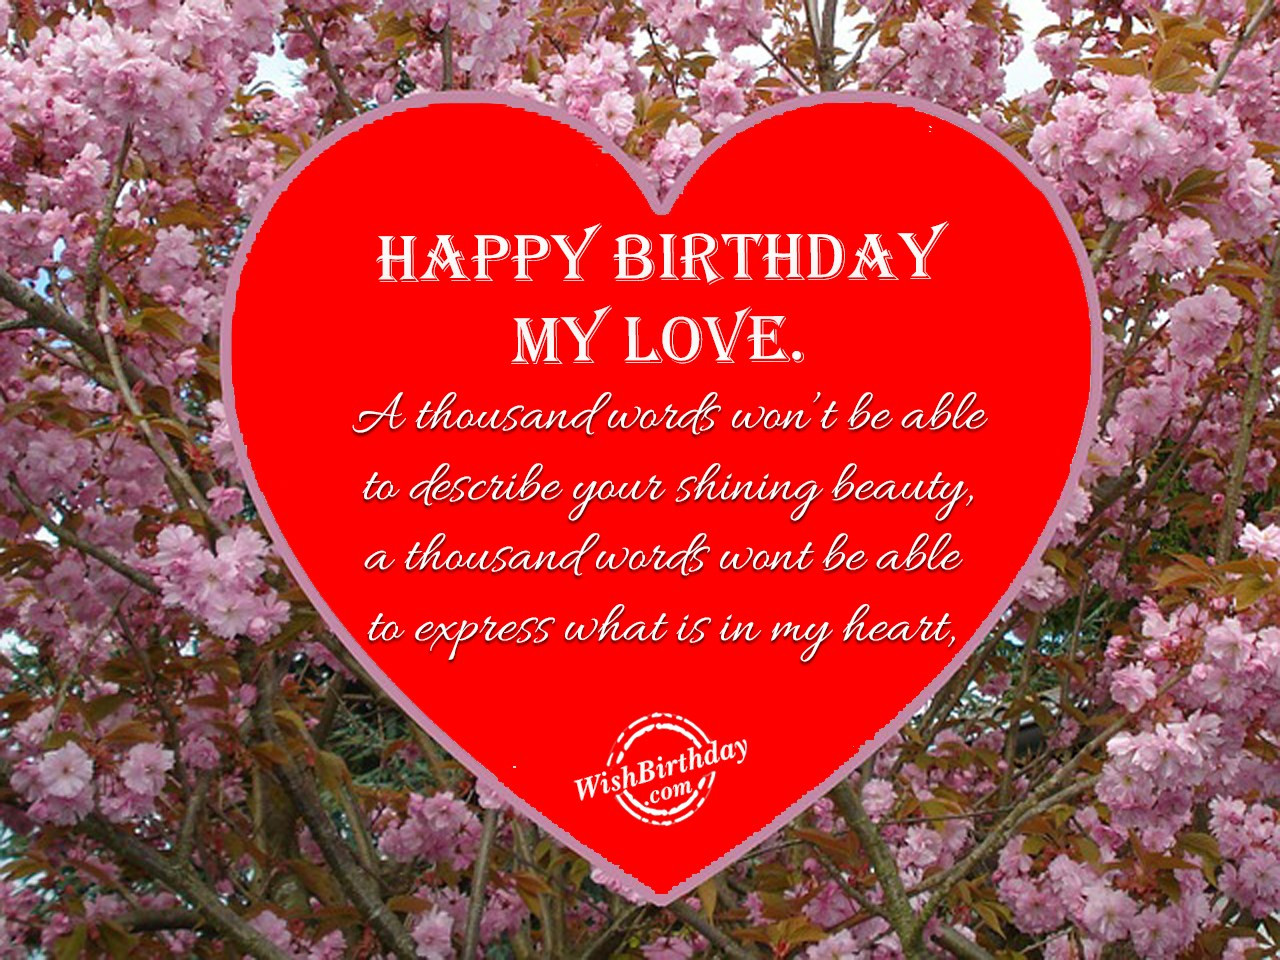 Best ideas about Birthday Wishes To Wife . Save or Pin Happy Birthday WishBirthday Now.